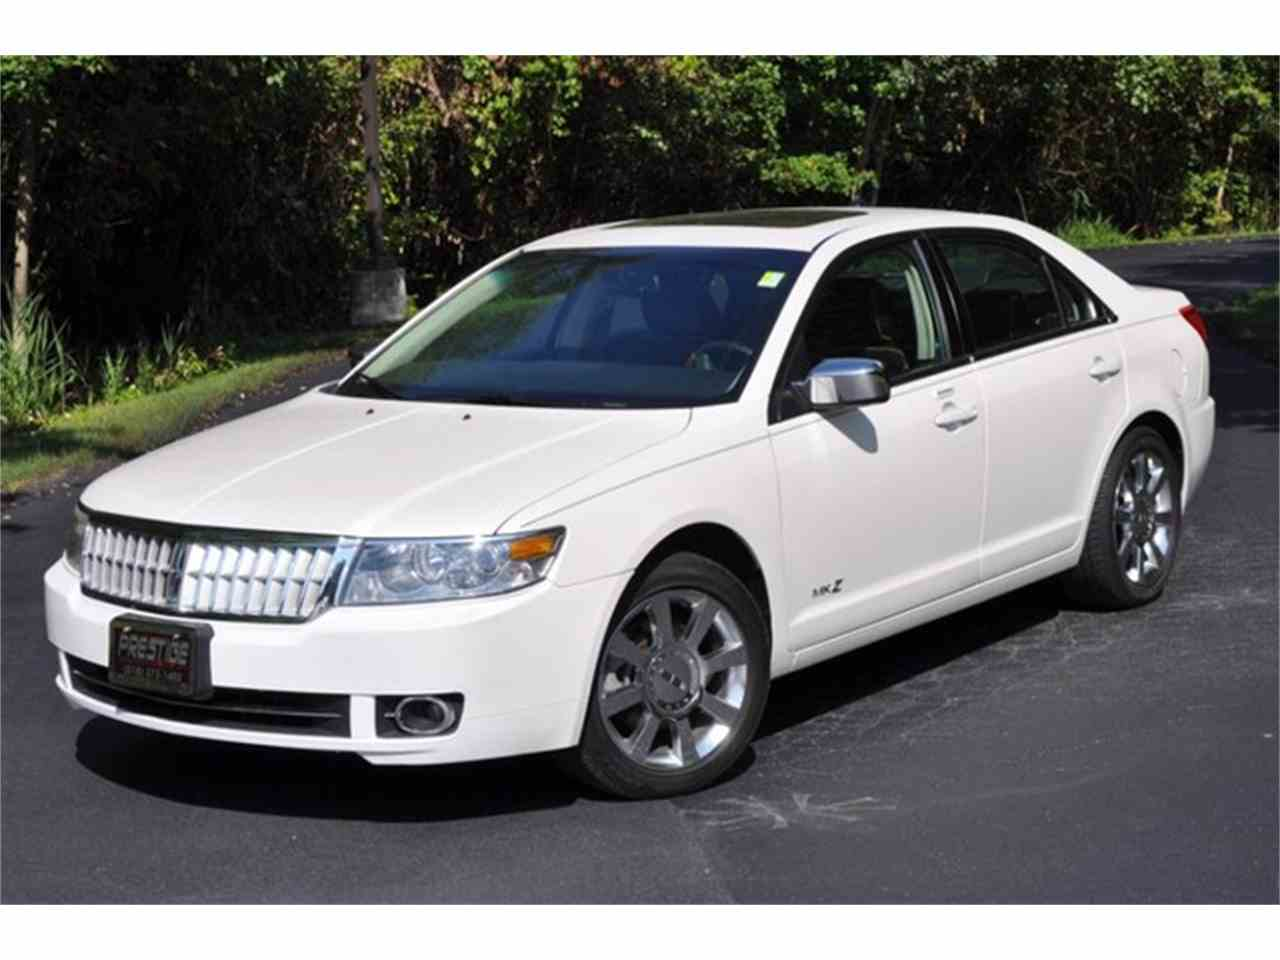 Large Picture of '09 Lincoln MKZ - $11,999.00 Offered by Prestige Motor Car Co. - LRLK